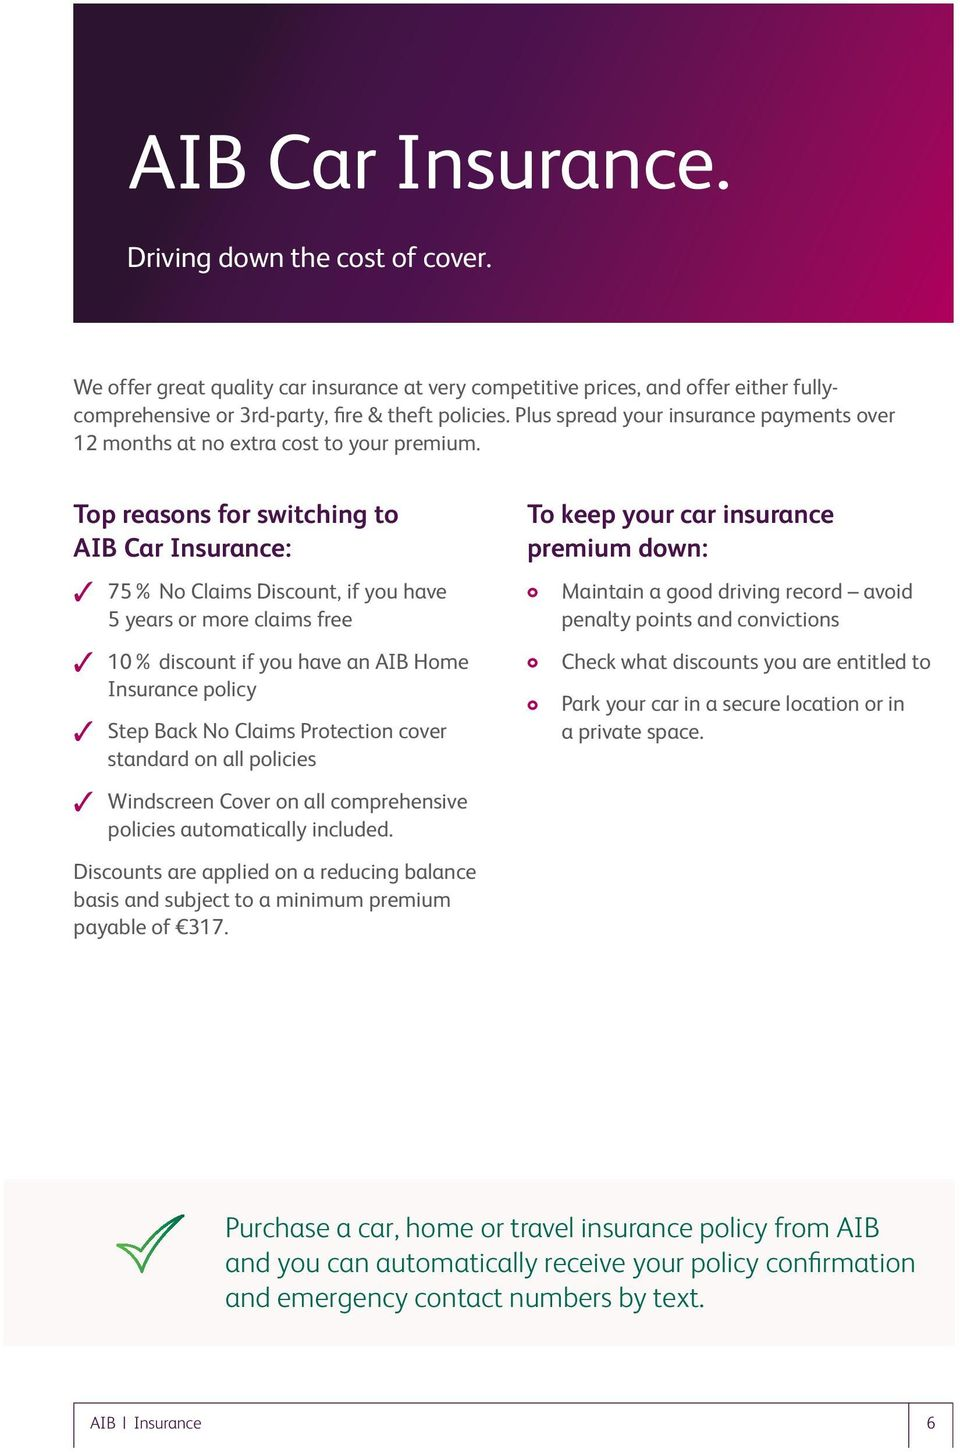 Top reasons for switching to AIB Car Insurance: 75% No Claims Discount, if you have 5 years or more claims free 10% discount if you have an AIB Home Insurance policy Step Back No Claims Protection